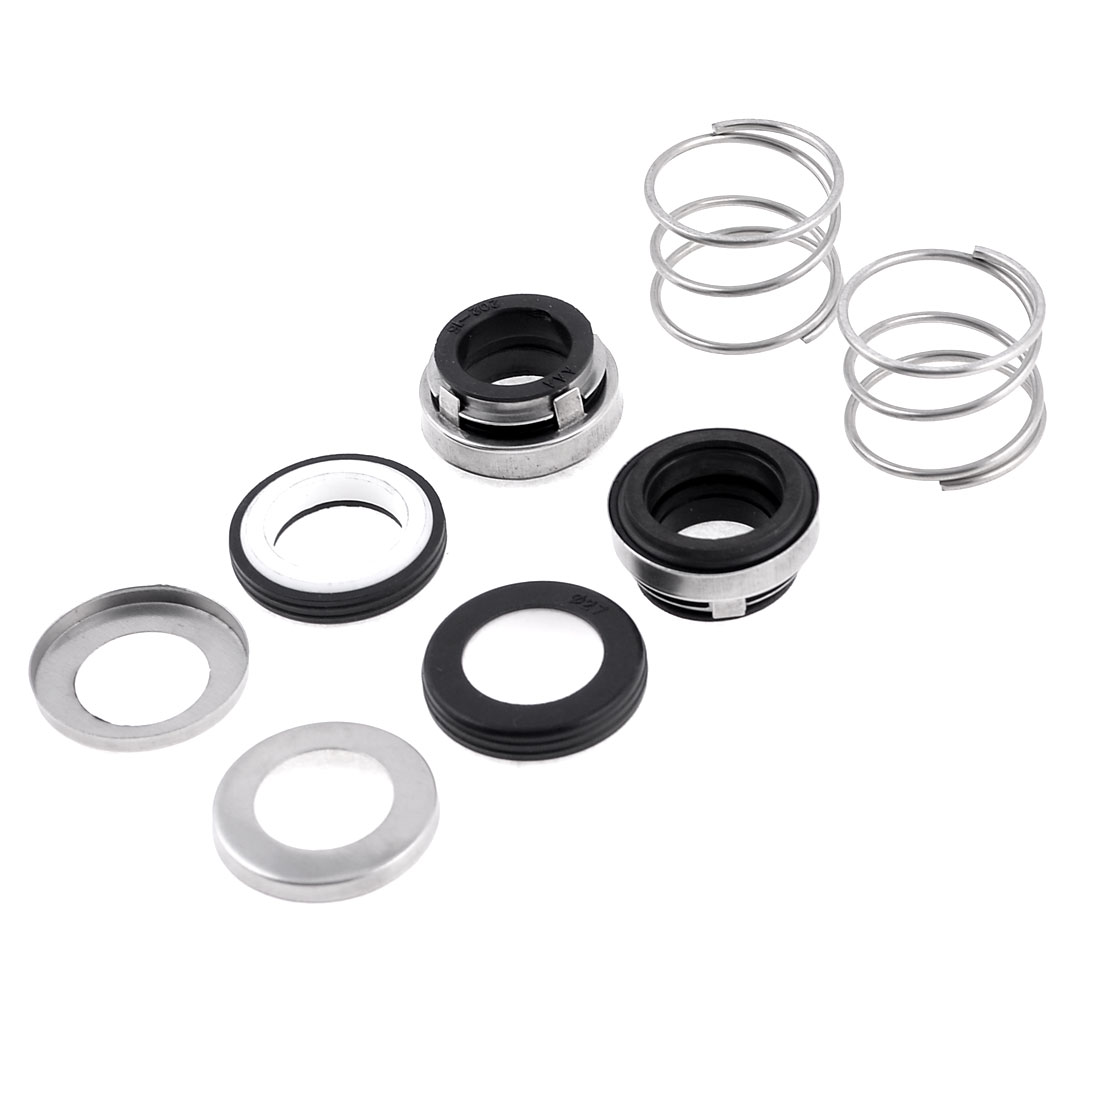 2 Pieces 16.5mm Single Spring Inbuilt Mechanical Water Pump Shaft Seal